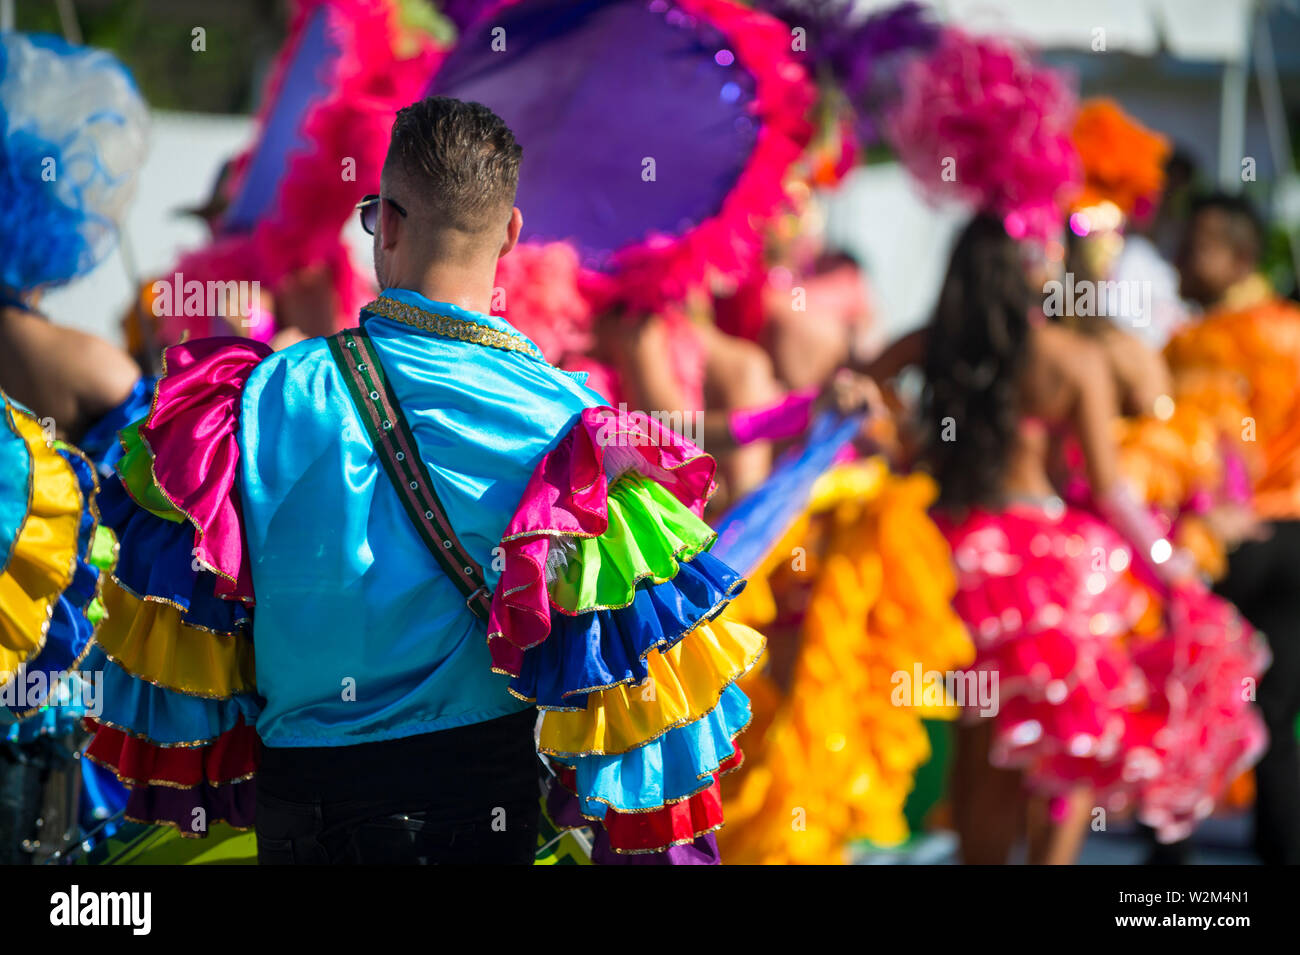 Abstract view of samba dancers in colorful frilled costumes at a daytime Carnival street party in Rio de Janeiro, Brazil - Stock Image